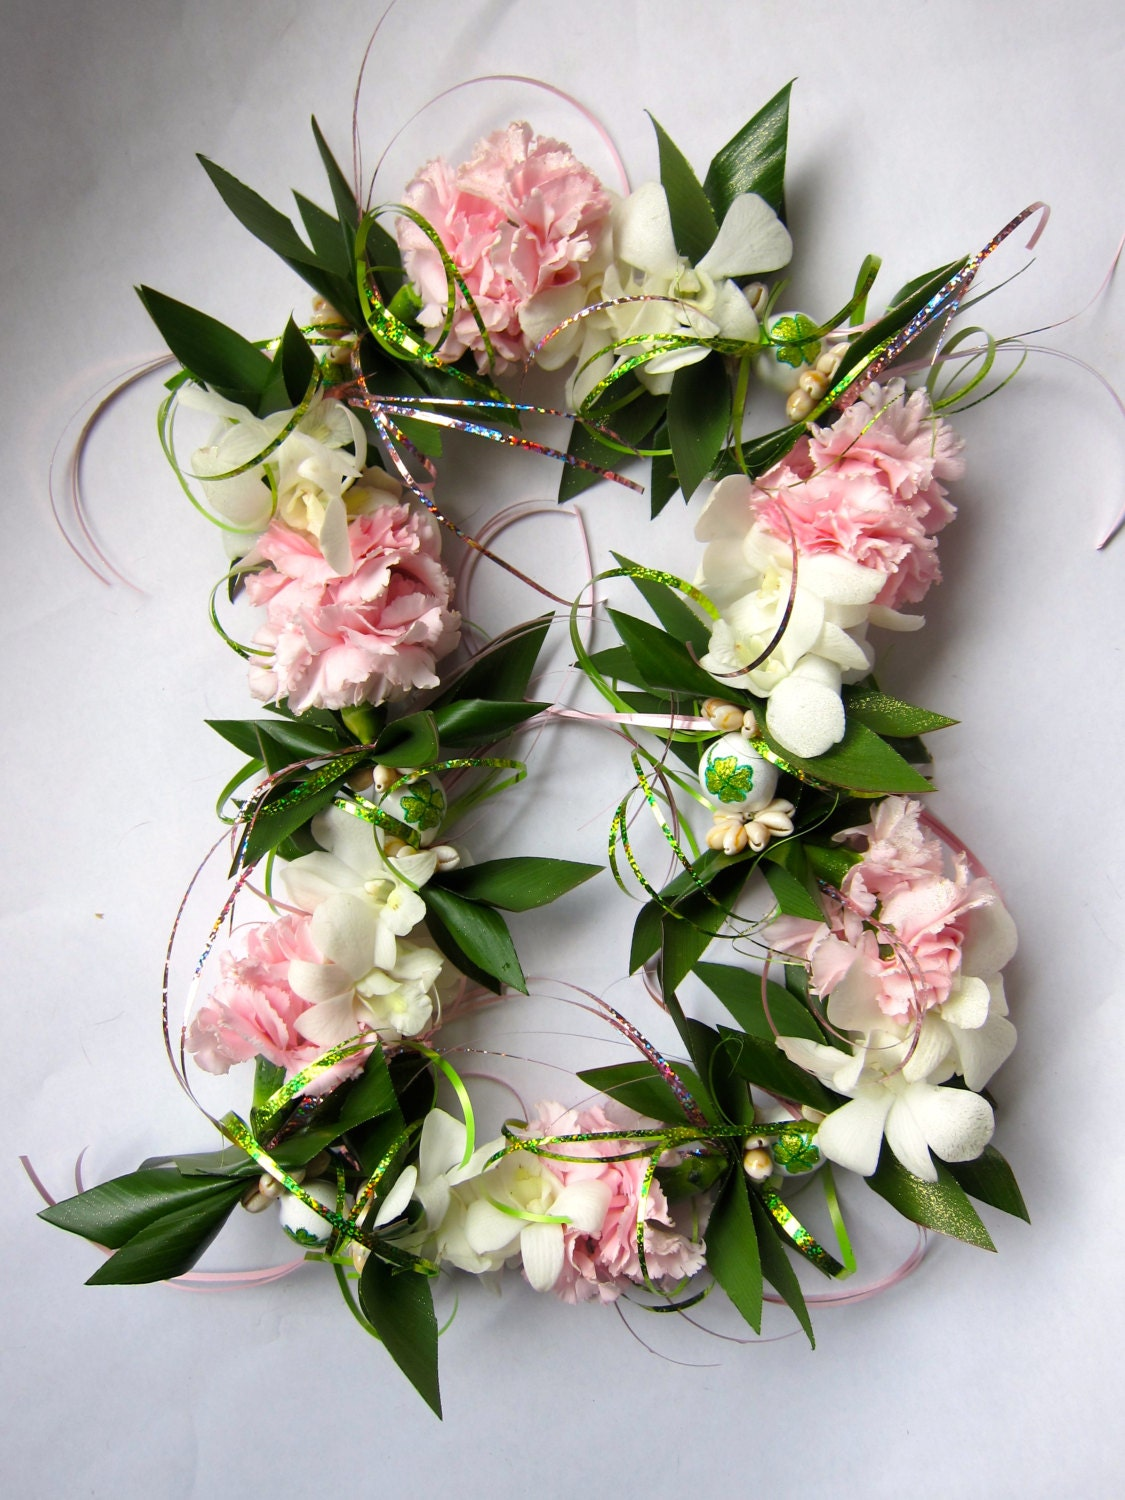 Chicago Florist - Flower Delivery by Chicago Flower Company